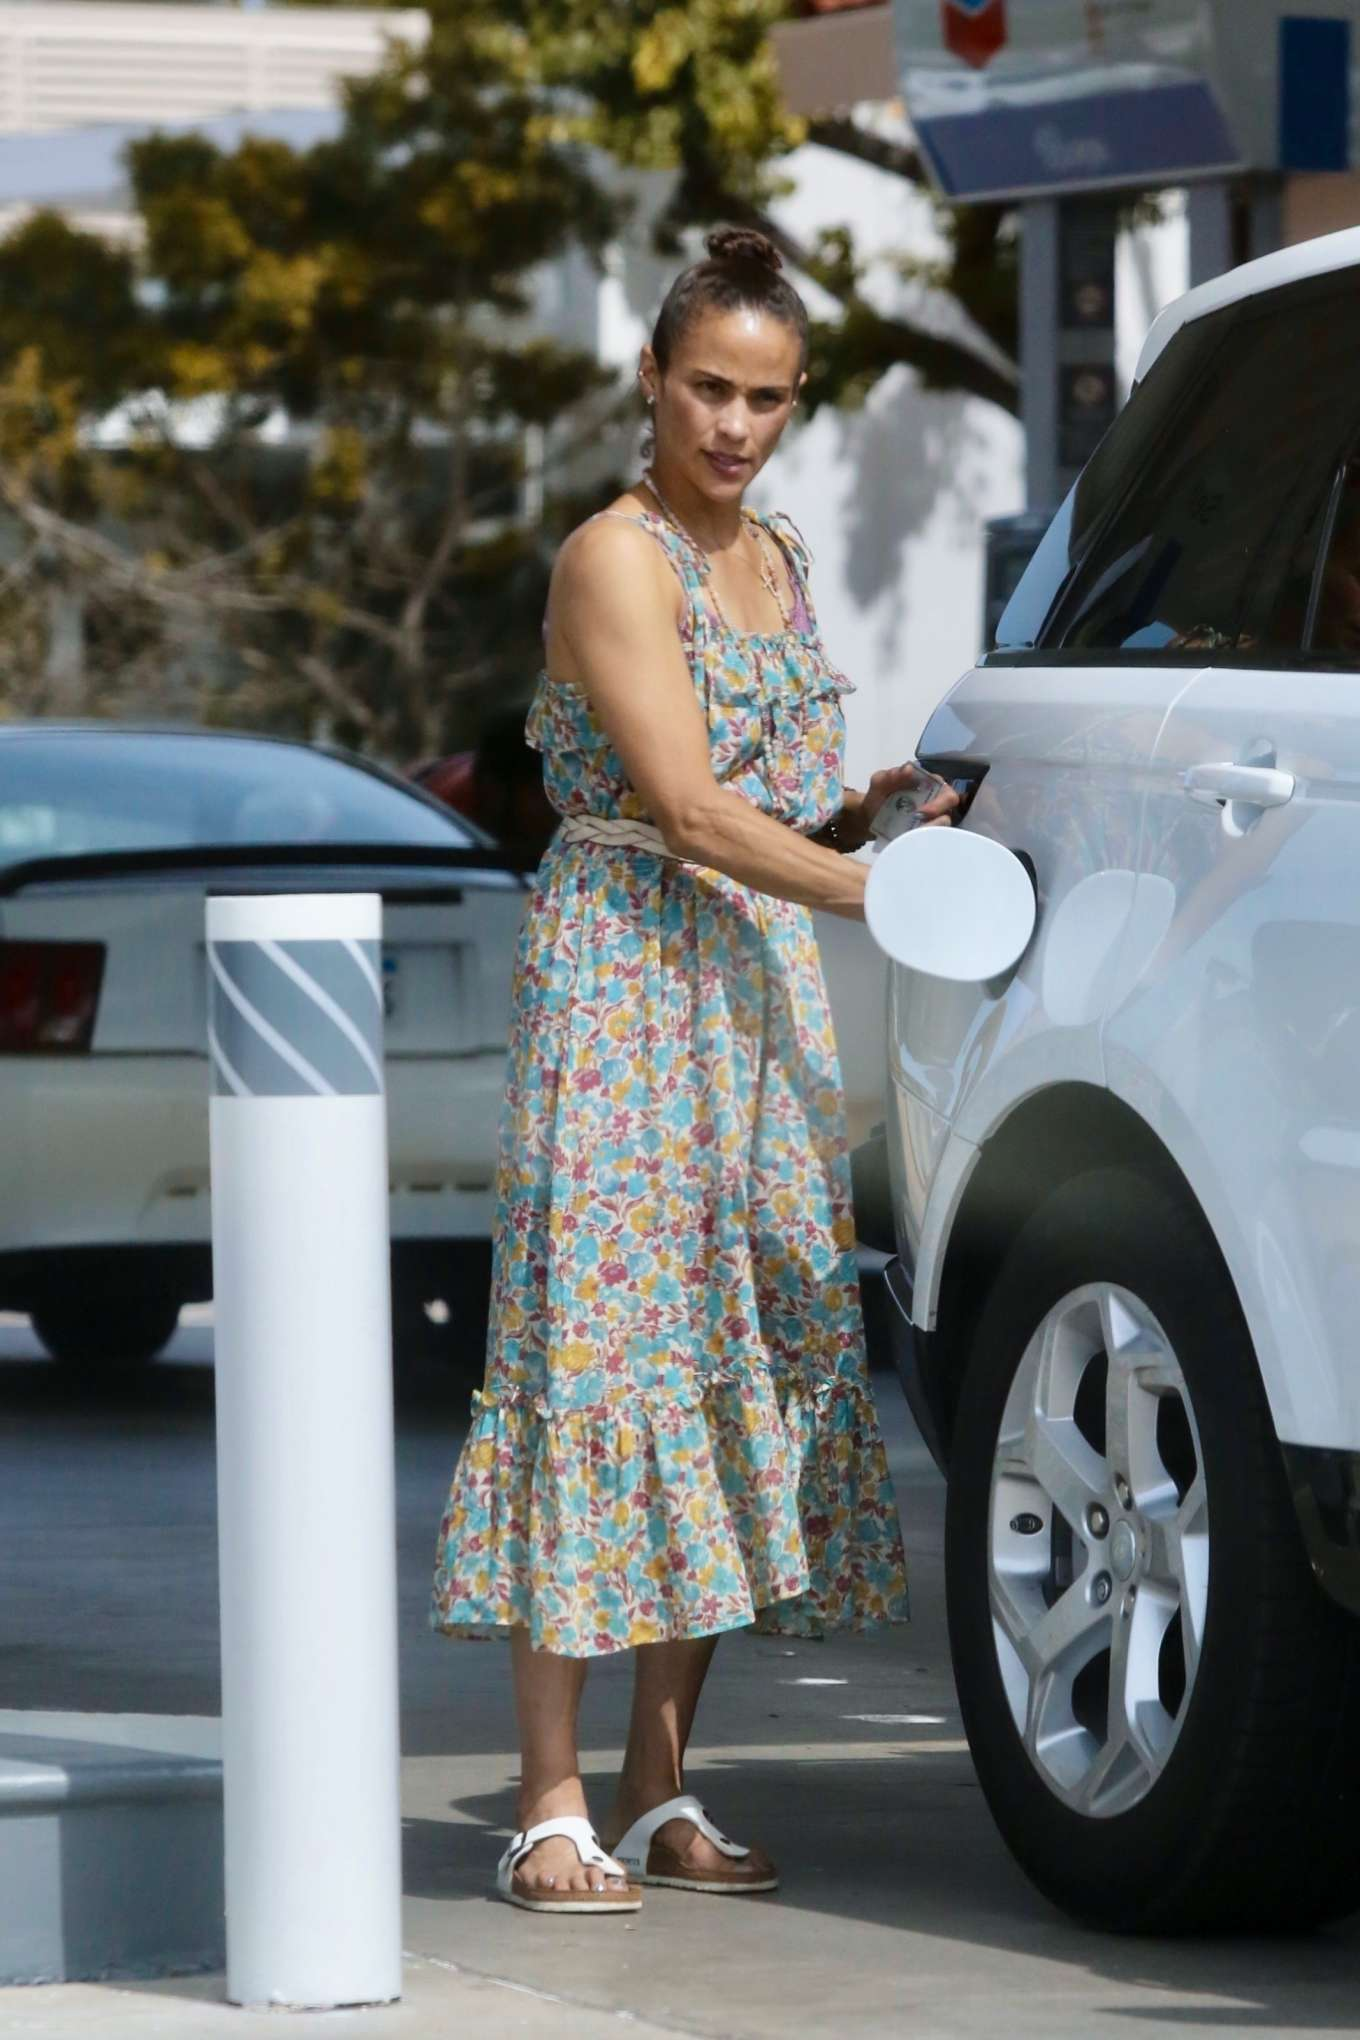 Paula Patton 2019 : Paula Patton in Floral Summer Dress-11